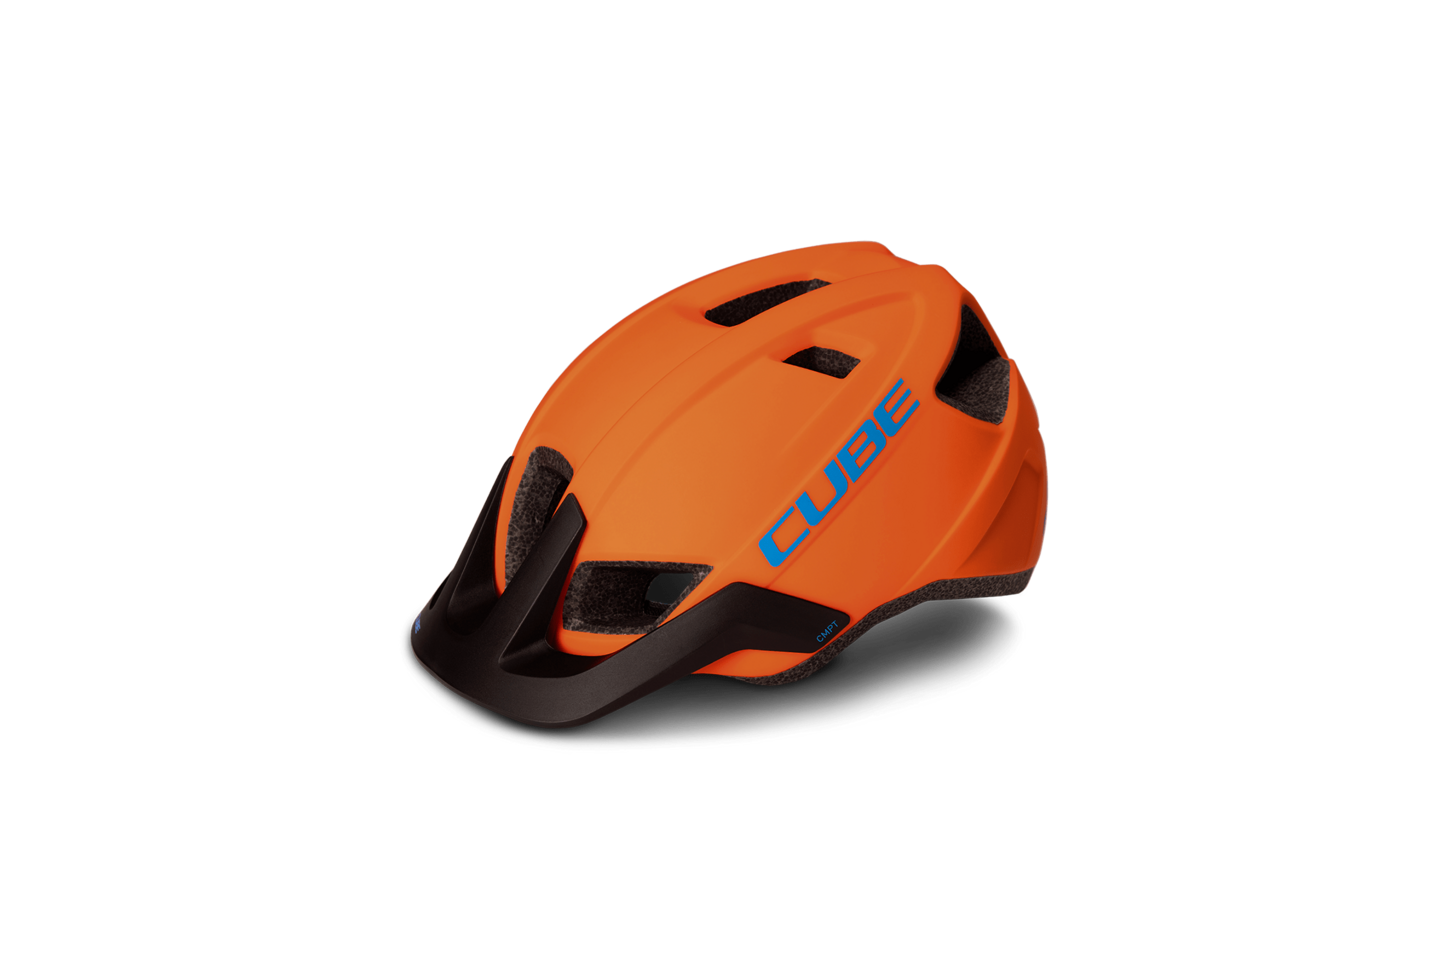 Шлем CUBE Helm CMPT orange'n'blue